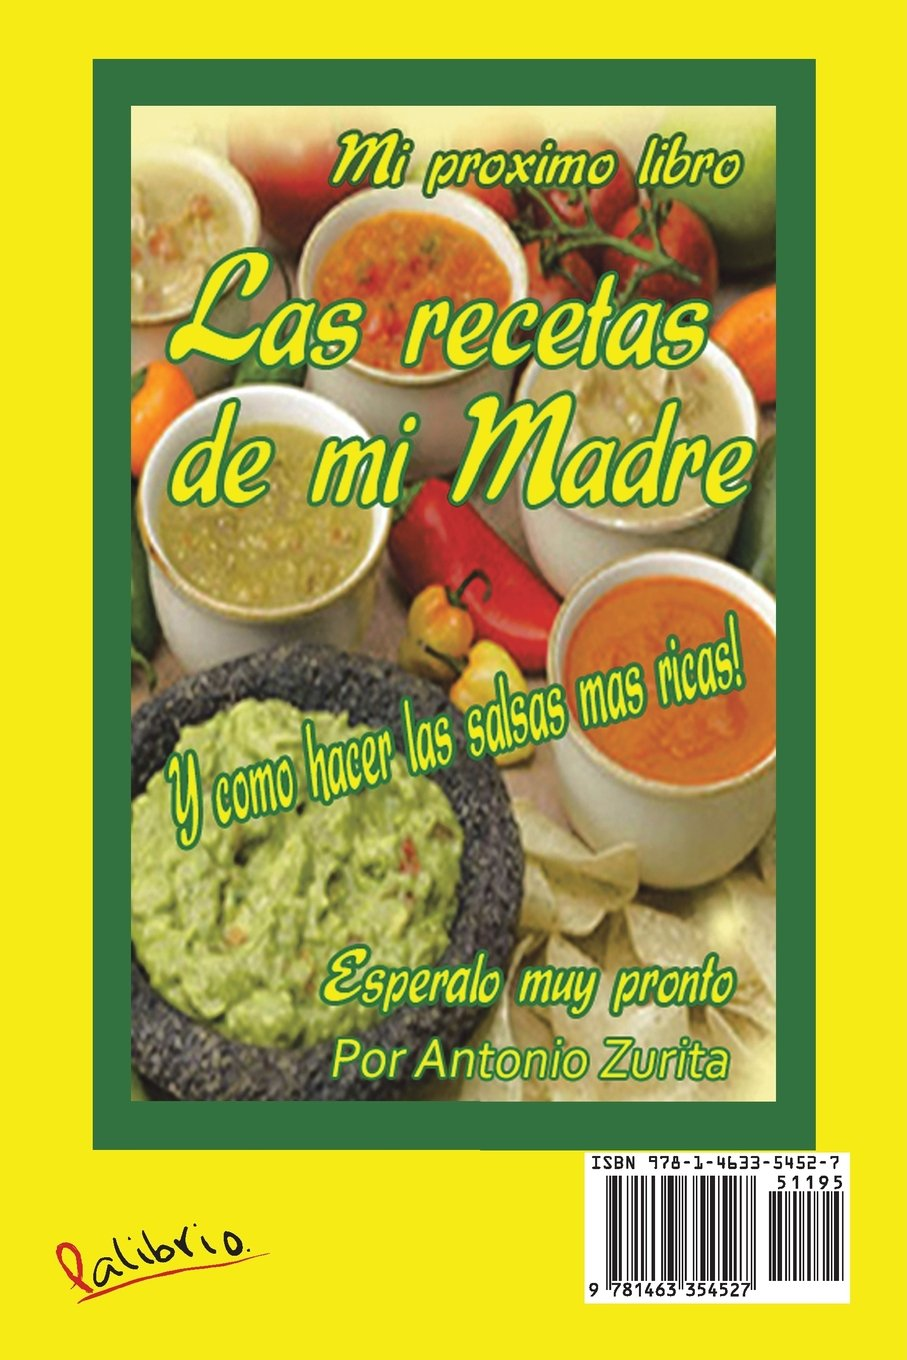 Amazon.com: Maldita Droga (Spanish Edition) (9781463354527): Antonio Zurita: Books